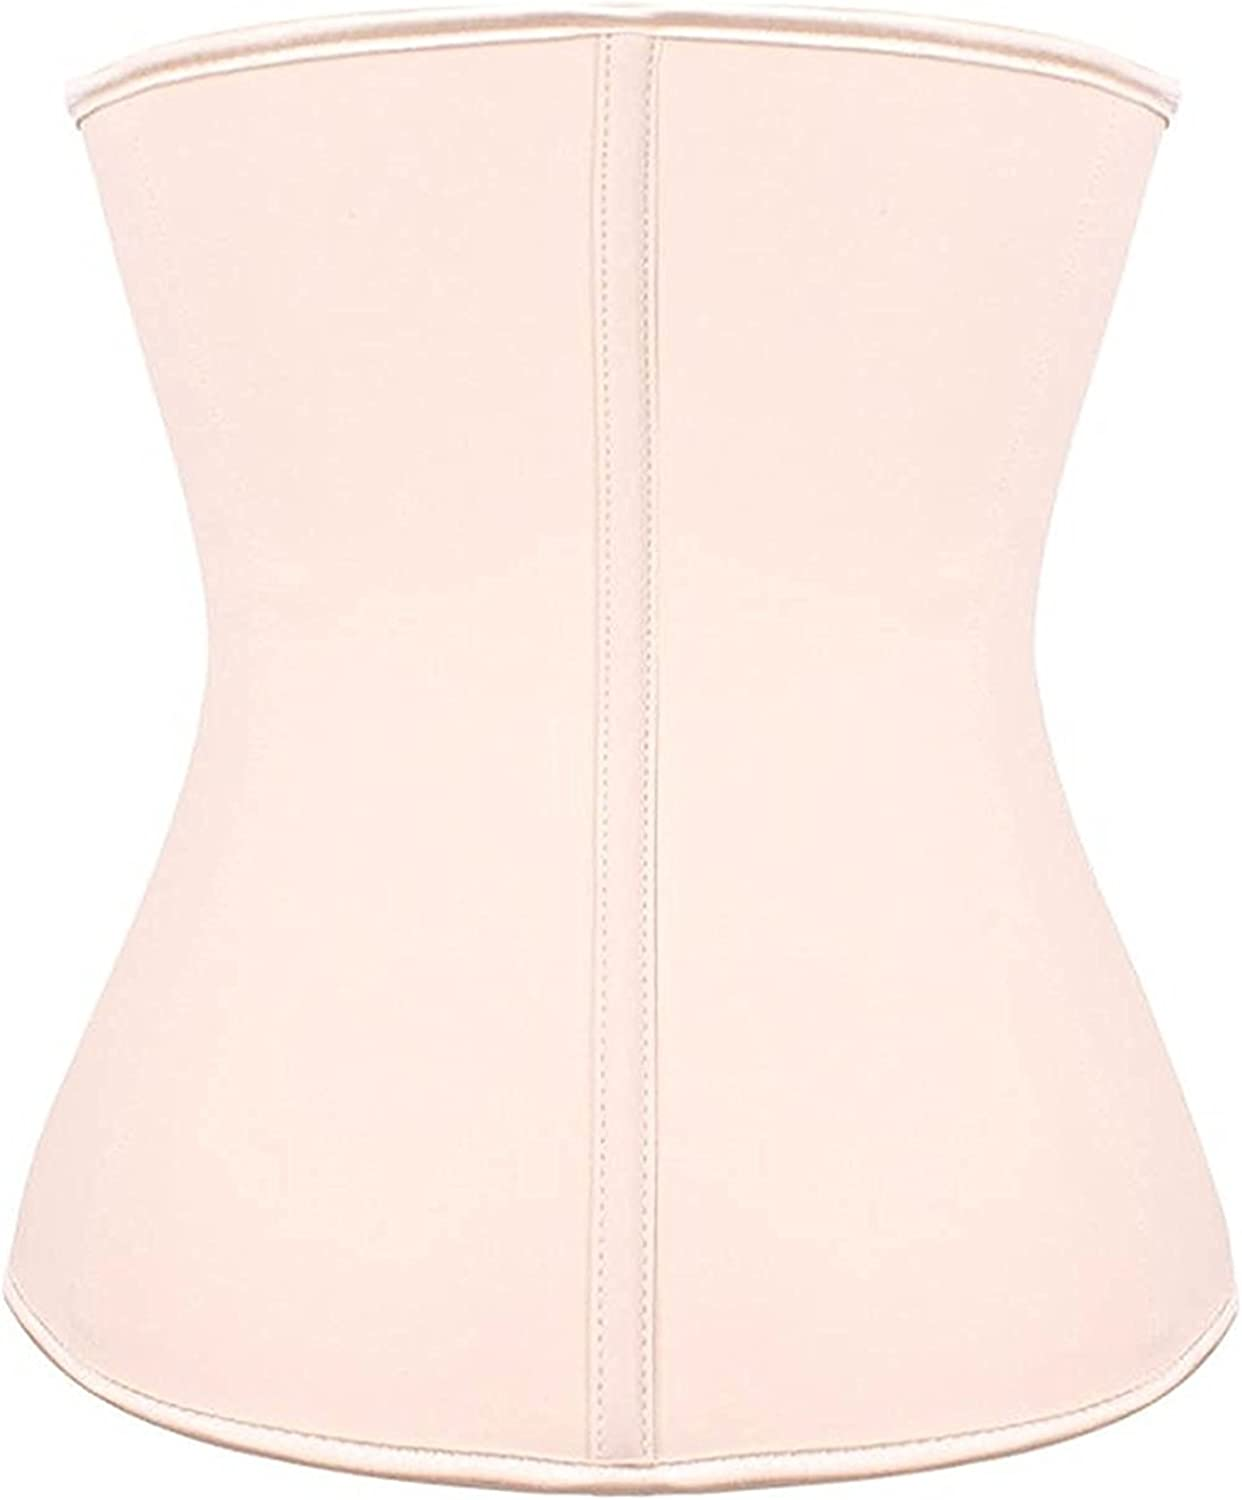 YIANNA Donna Corsetto Dimagrante Latex Waist Trainer Corpetto Bustino Body Shaper Modellante